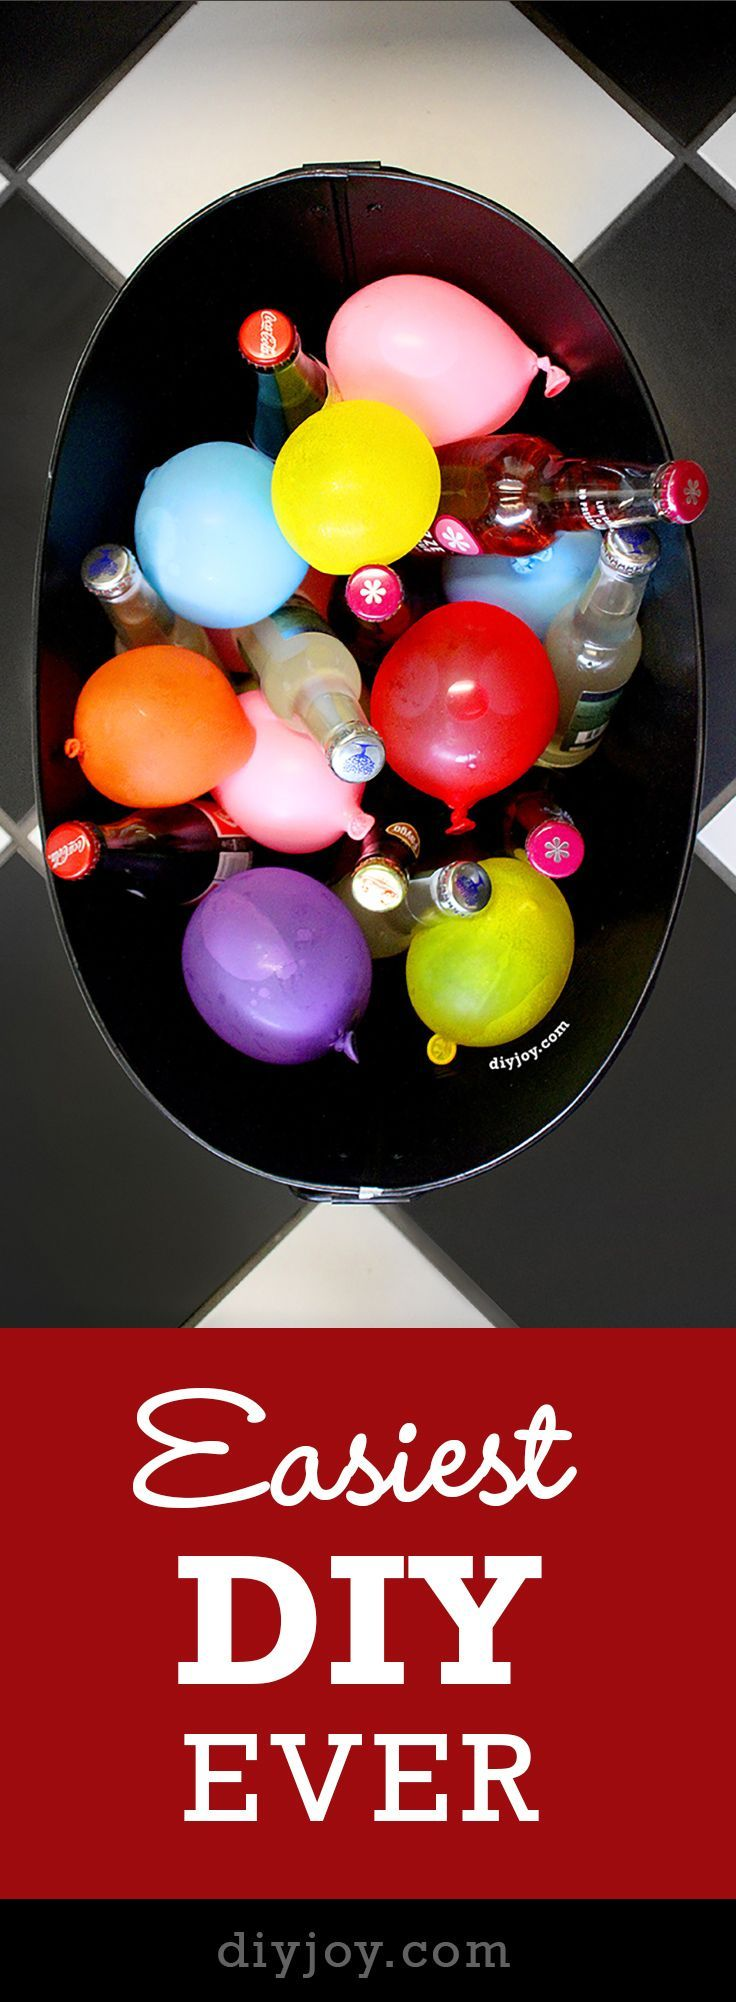 259 best images about diy ideas on pinterest crafts for Water balloon christmas decorations